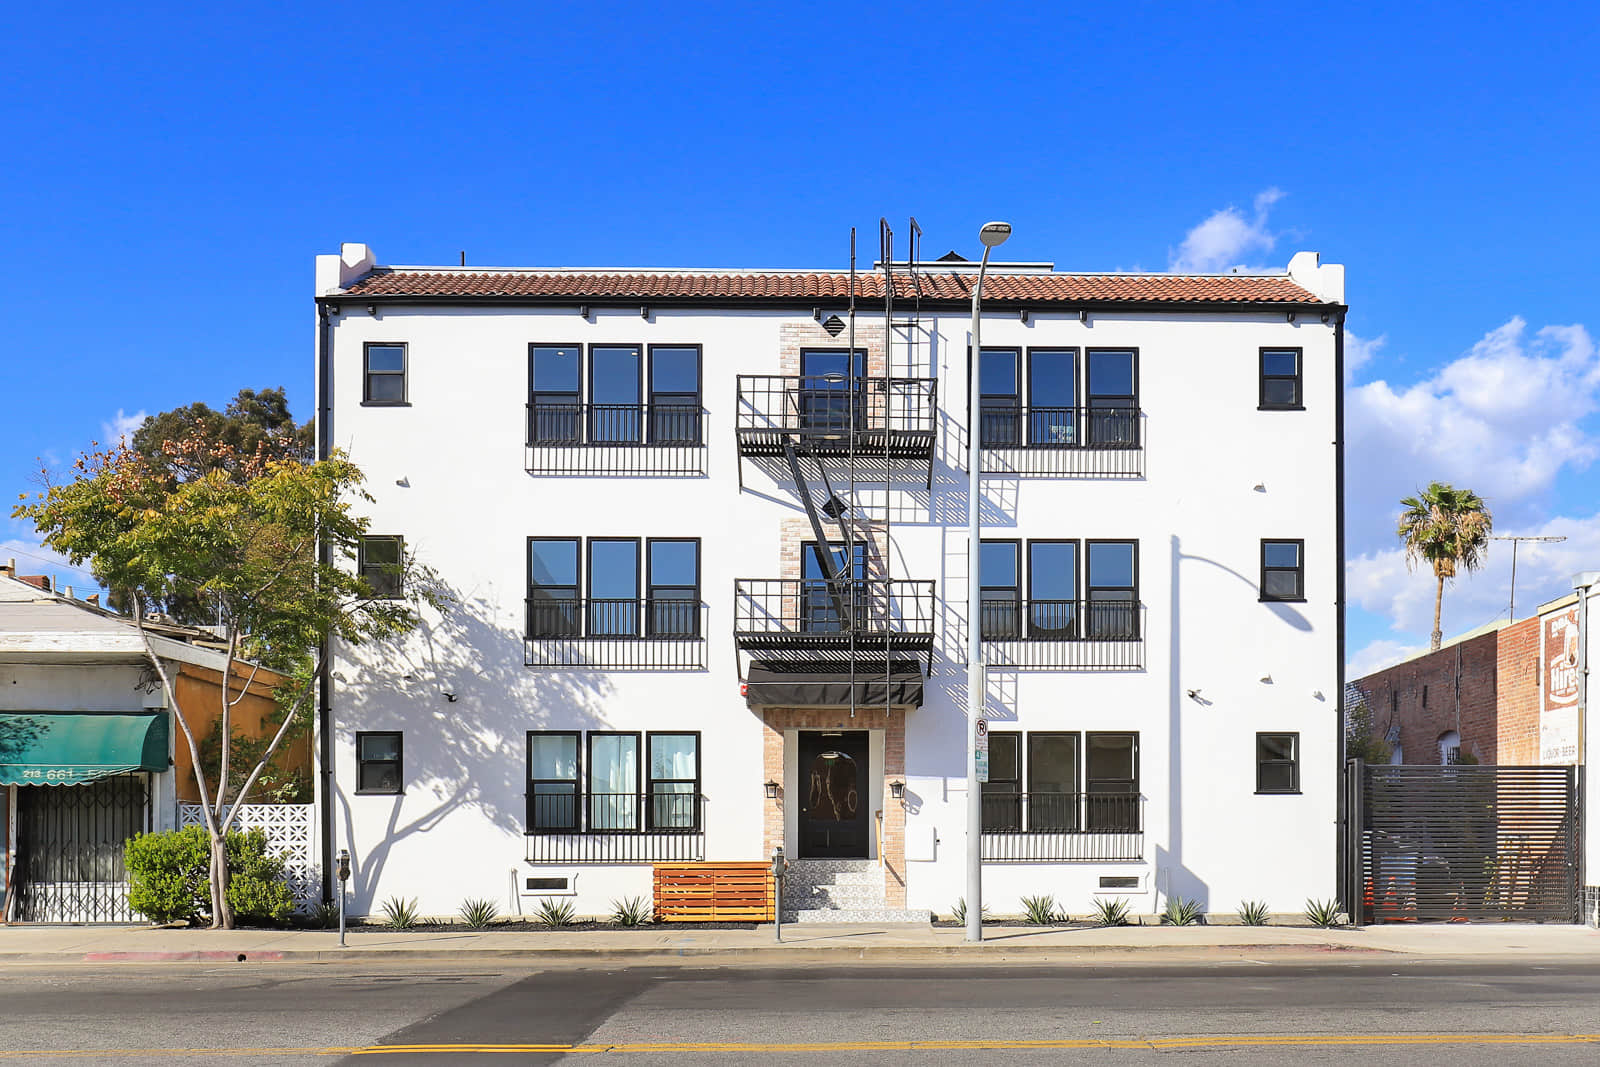 Pristinely Renovated Junior 1 bedrm Apartment Building w/ Luxury Features | NYC Living meets LA Concept, Vermont/Sunset Metro Stop